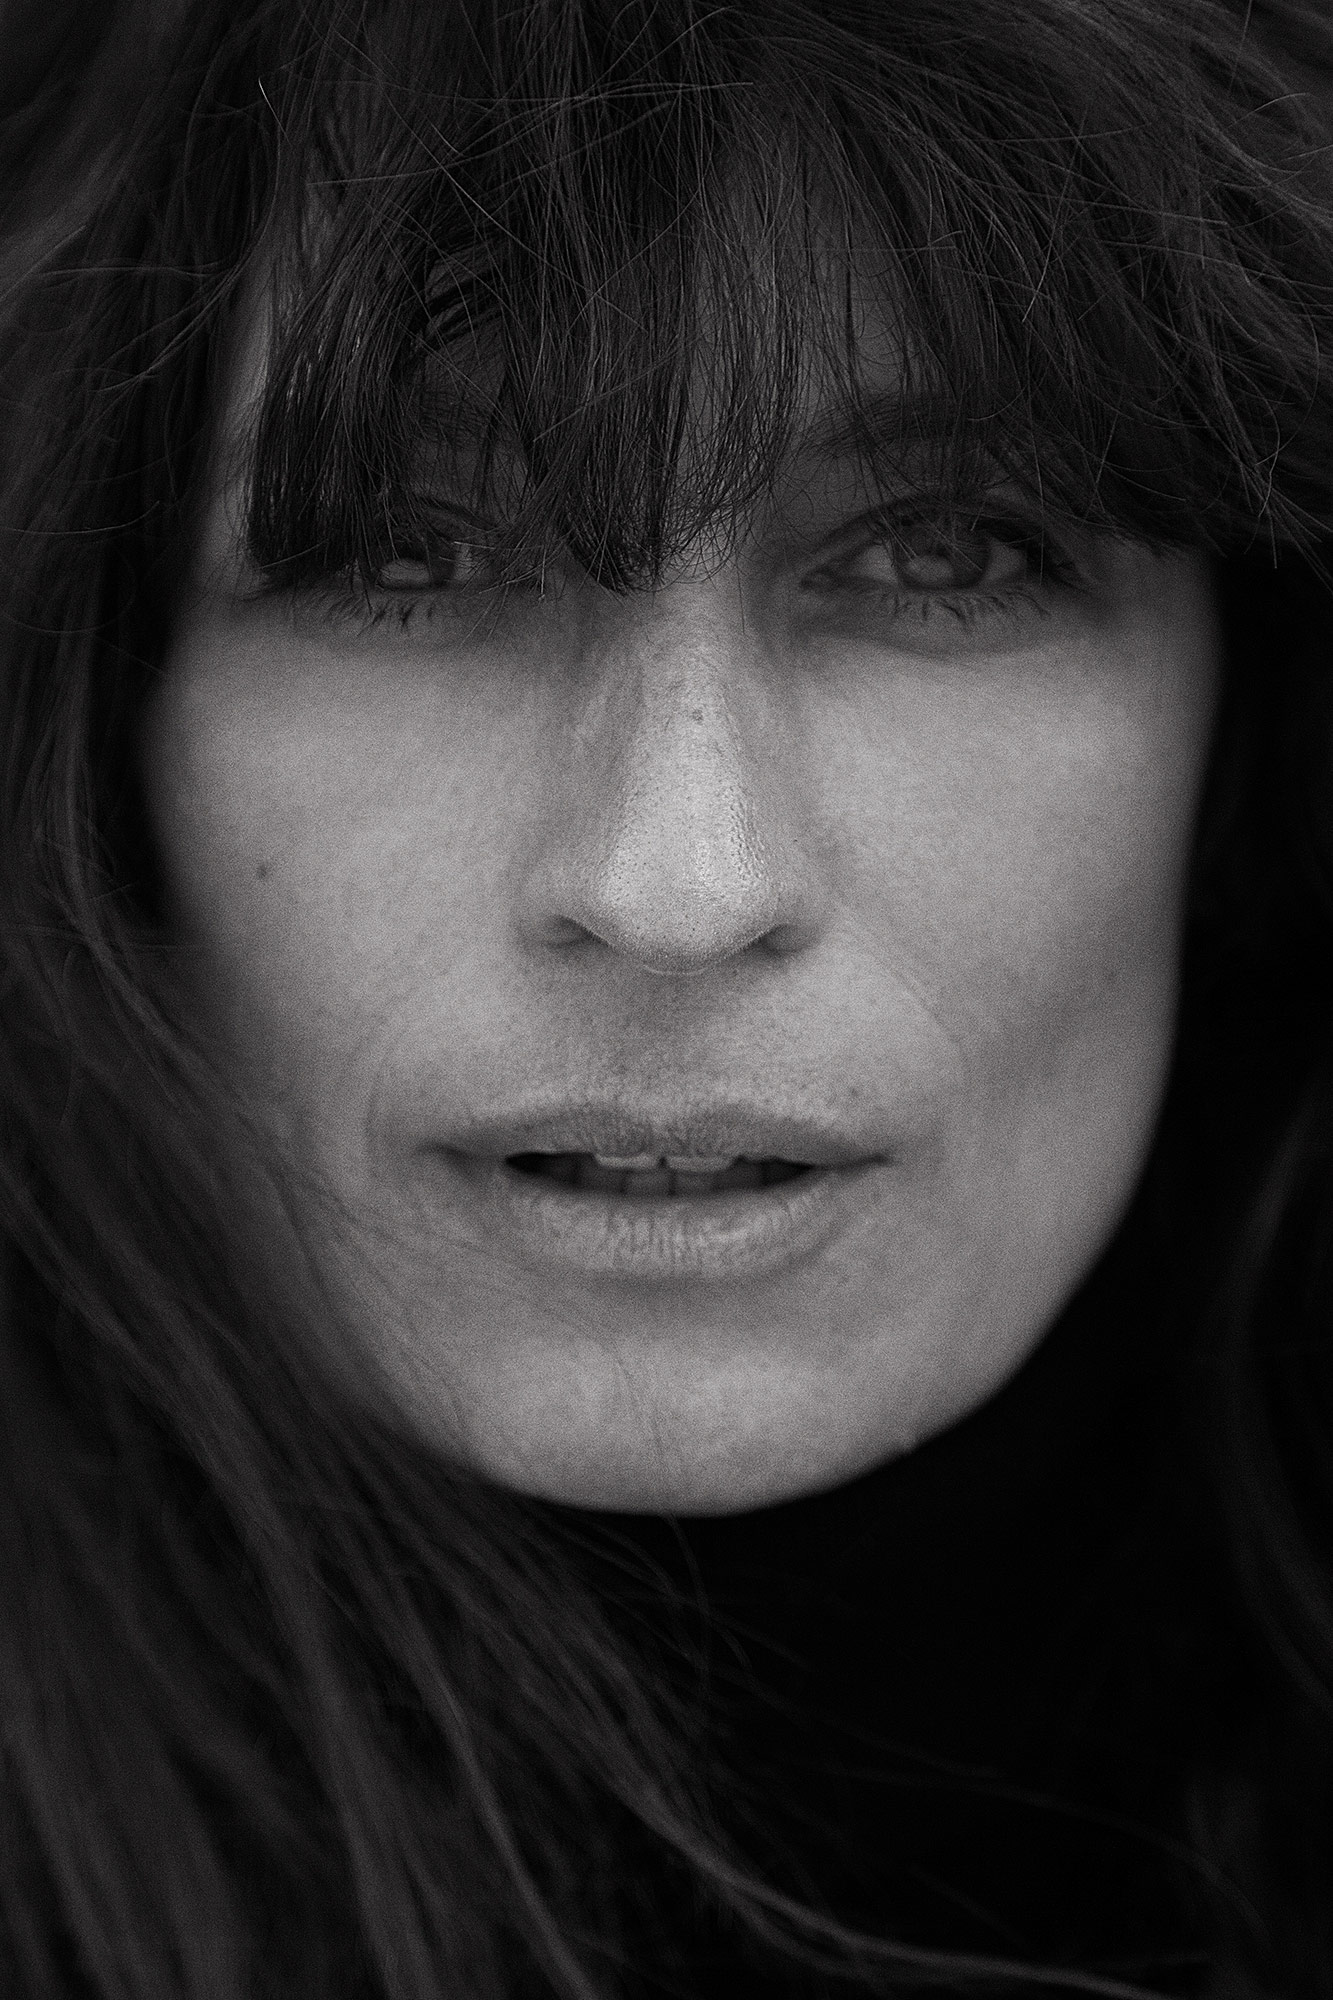 Ten Magazine | Caroline de Maigret by Wendelin Spiess represented by stoever artists